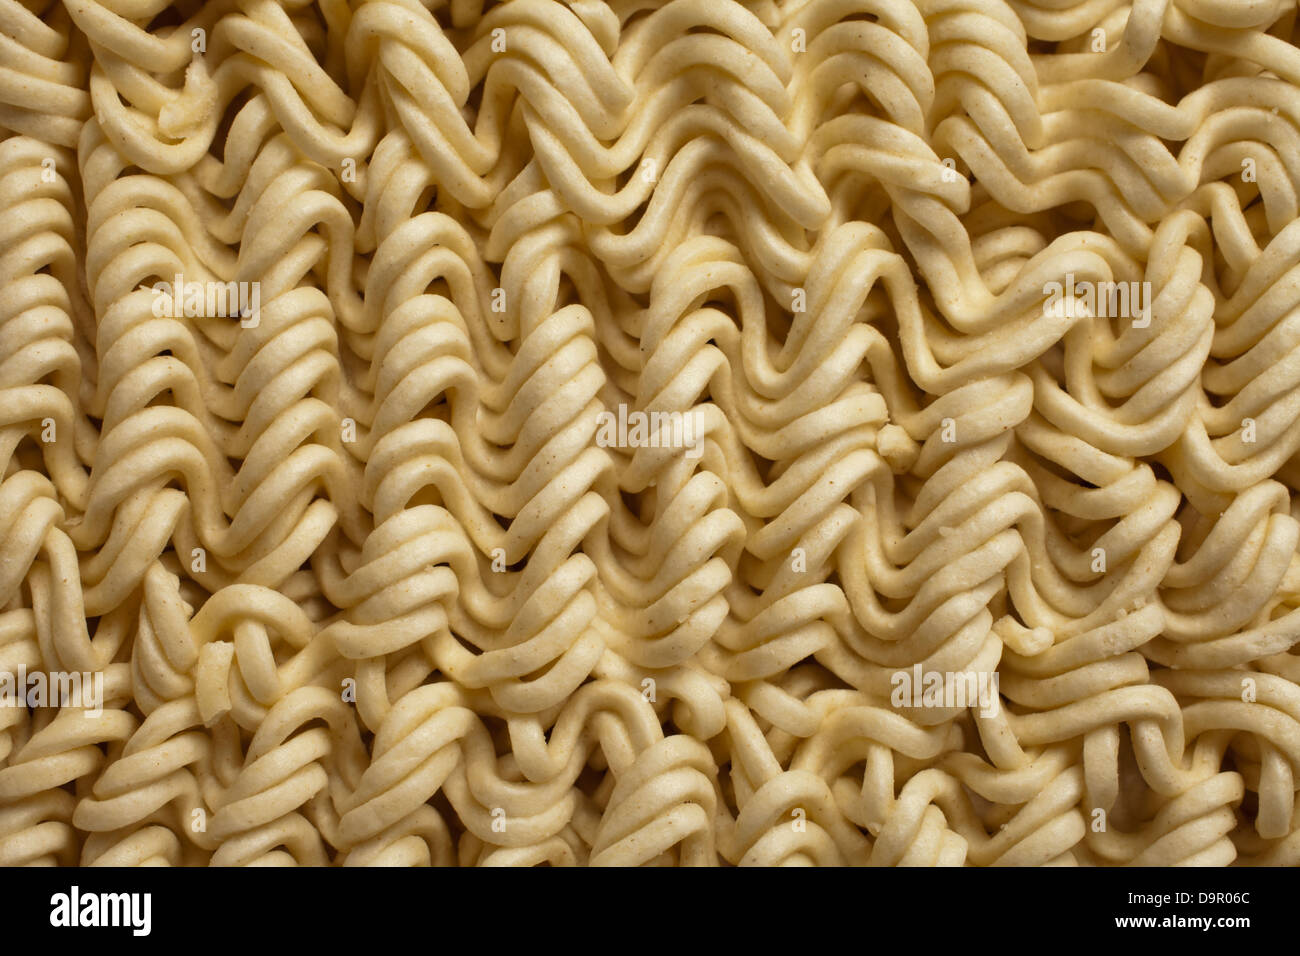 uncooked dry instant ramen noodles - Stock Image